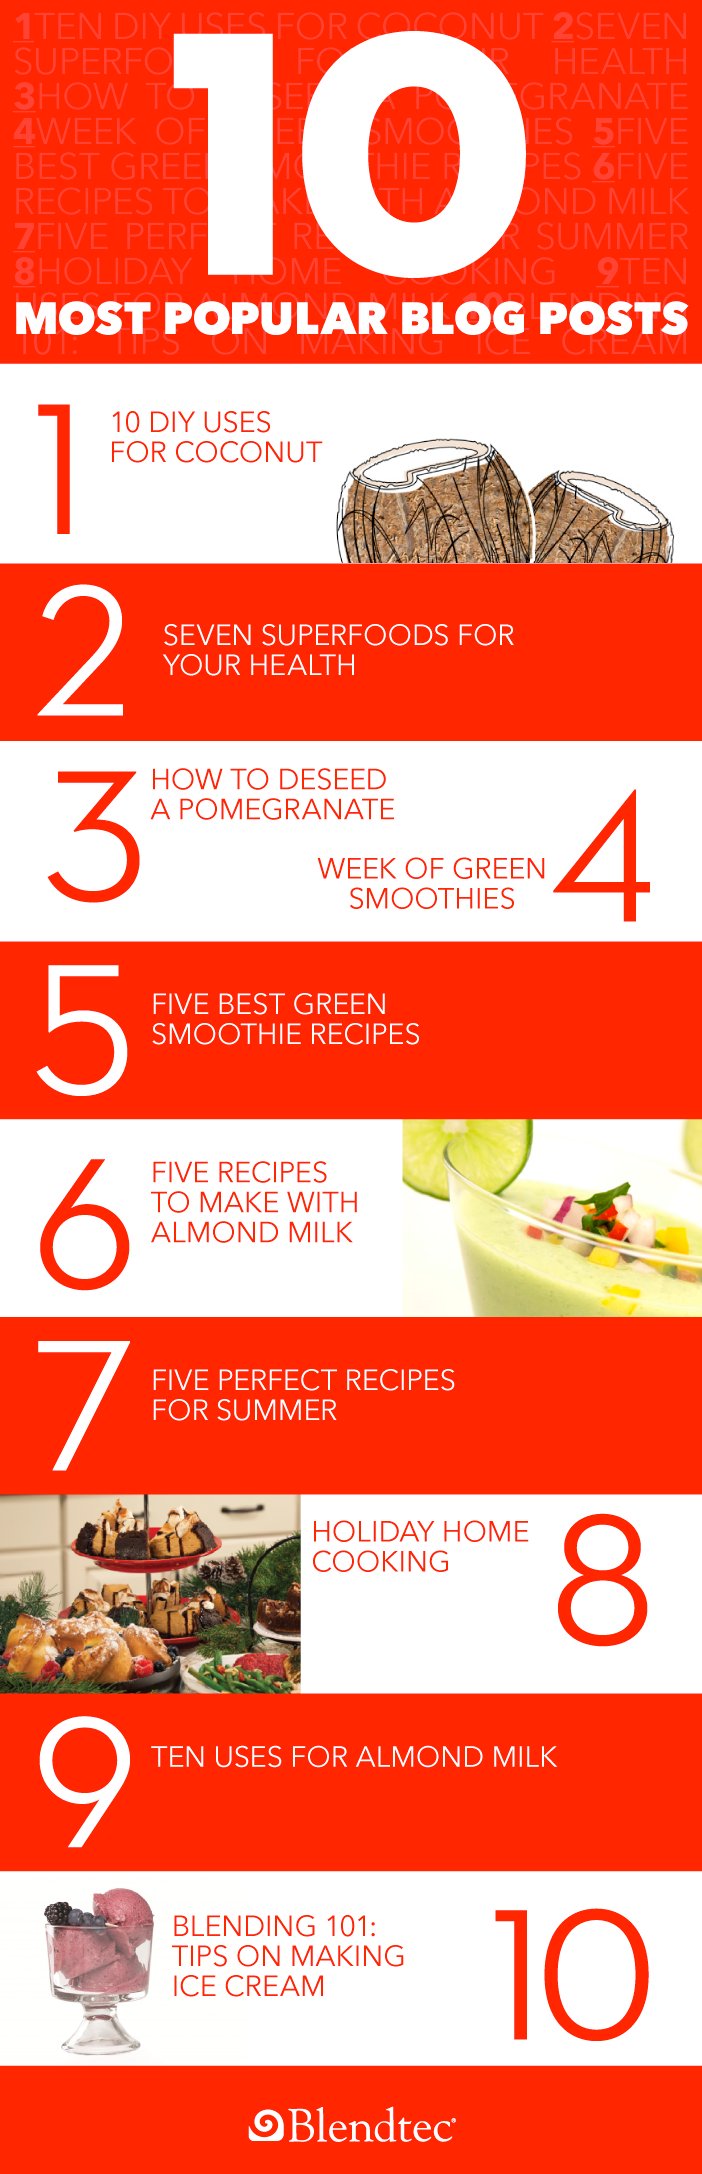 Blendtec's 10 Most Popular Blog Posts graphic